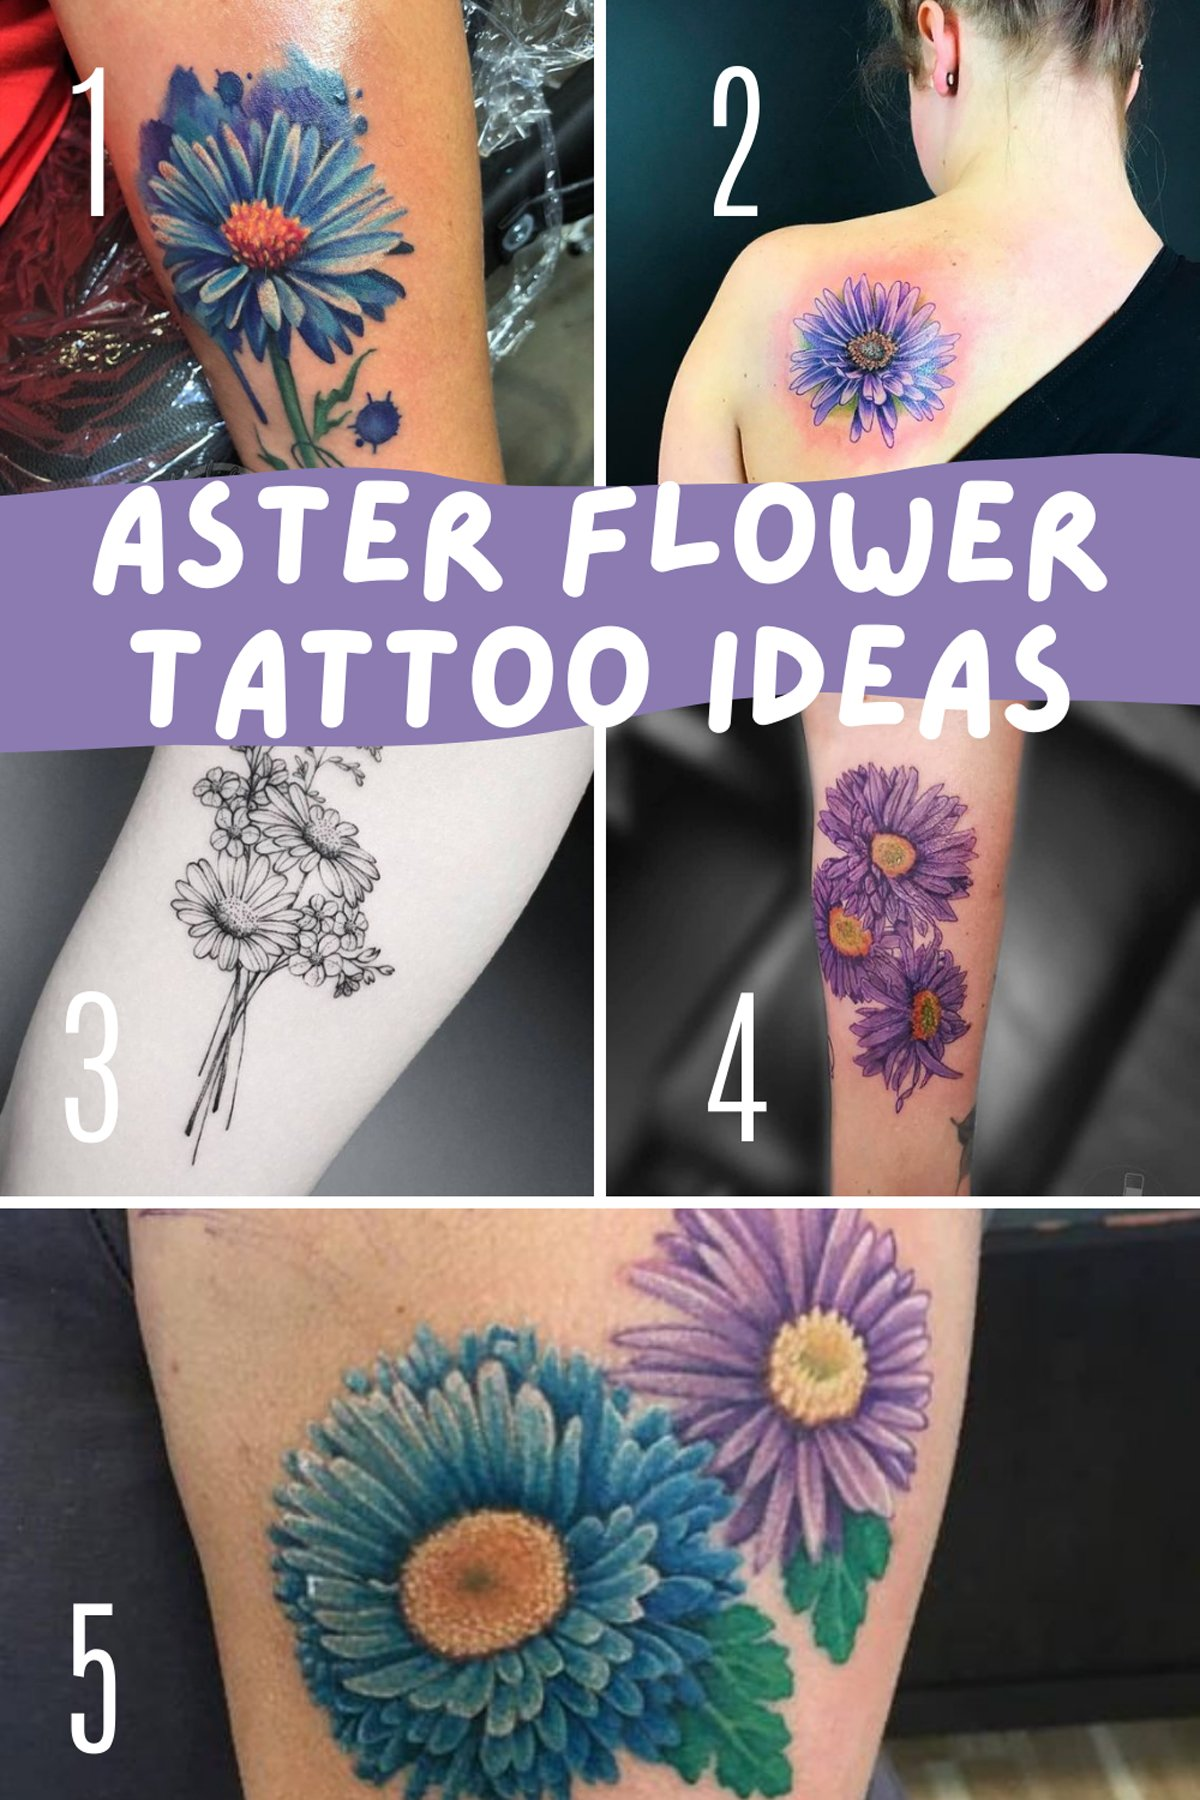 History of Aster Flower Tattoos